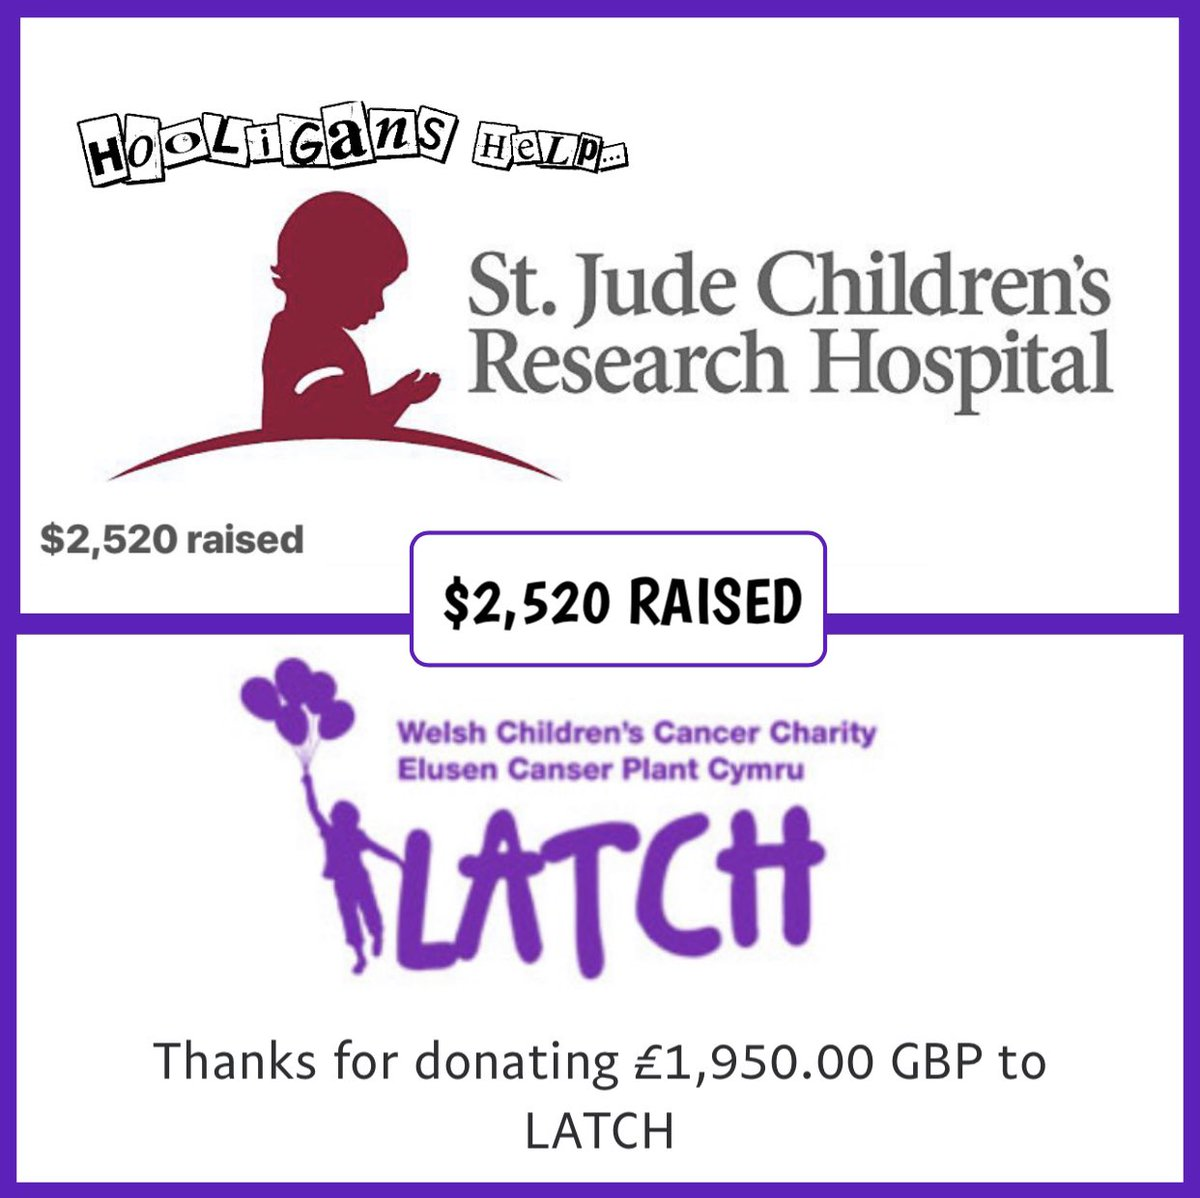 """Last month we raised $2,520 for @stjude & it was matched to @latchwales suggested to us by  @MandrewsJunior! You Hooligans are truly amazing!   Make sure you head to the link in the below & donate to """"Hooligans Help the JDRF!"""" to keep changing the world!  https://t.co/lgk8bsjuwK https://t.co/Wlvnn9Qw9d"""